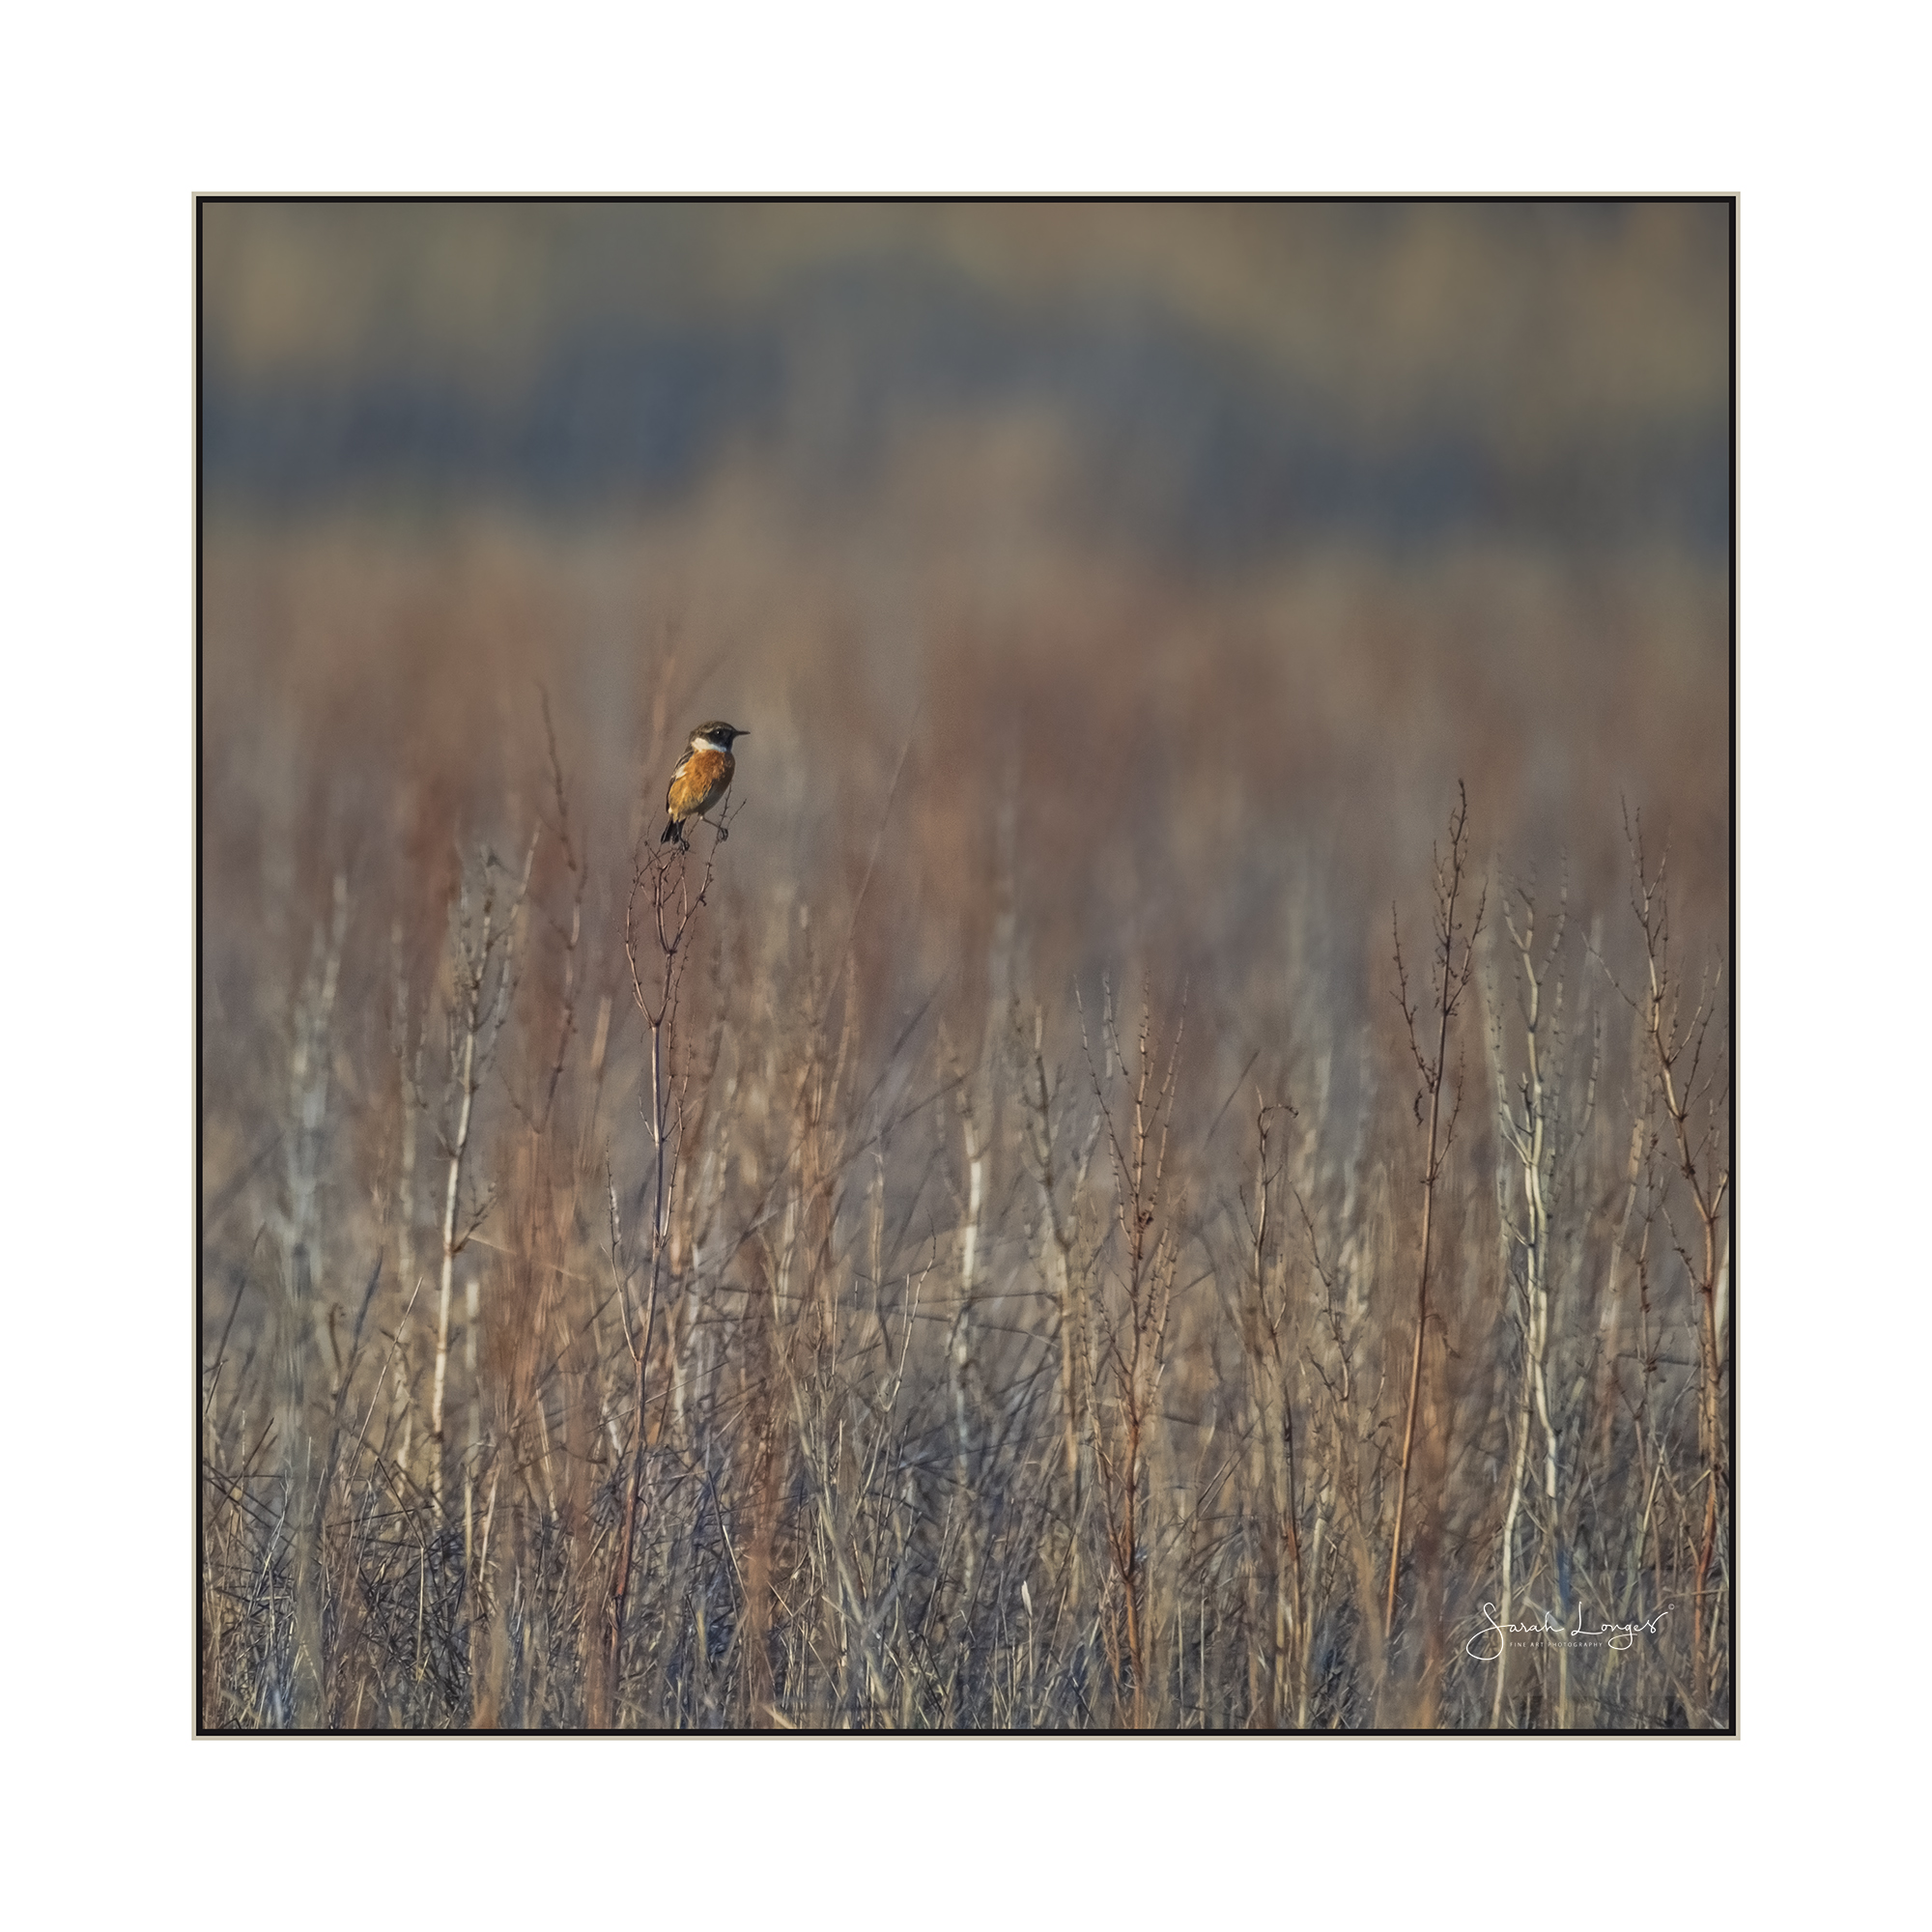 Male Stonechat at Papercourt Meadows